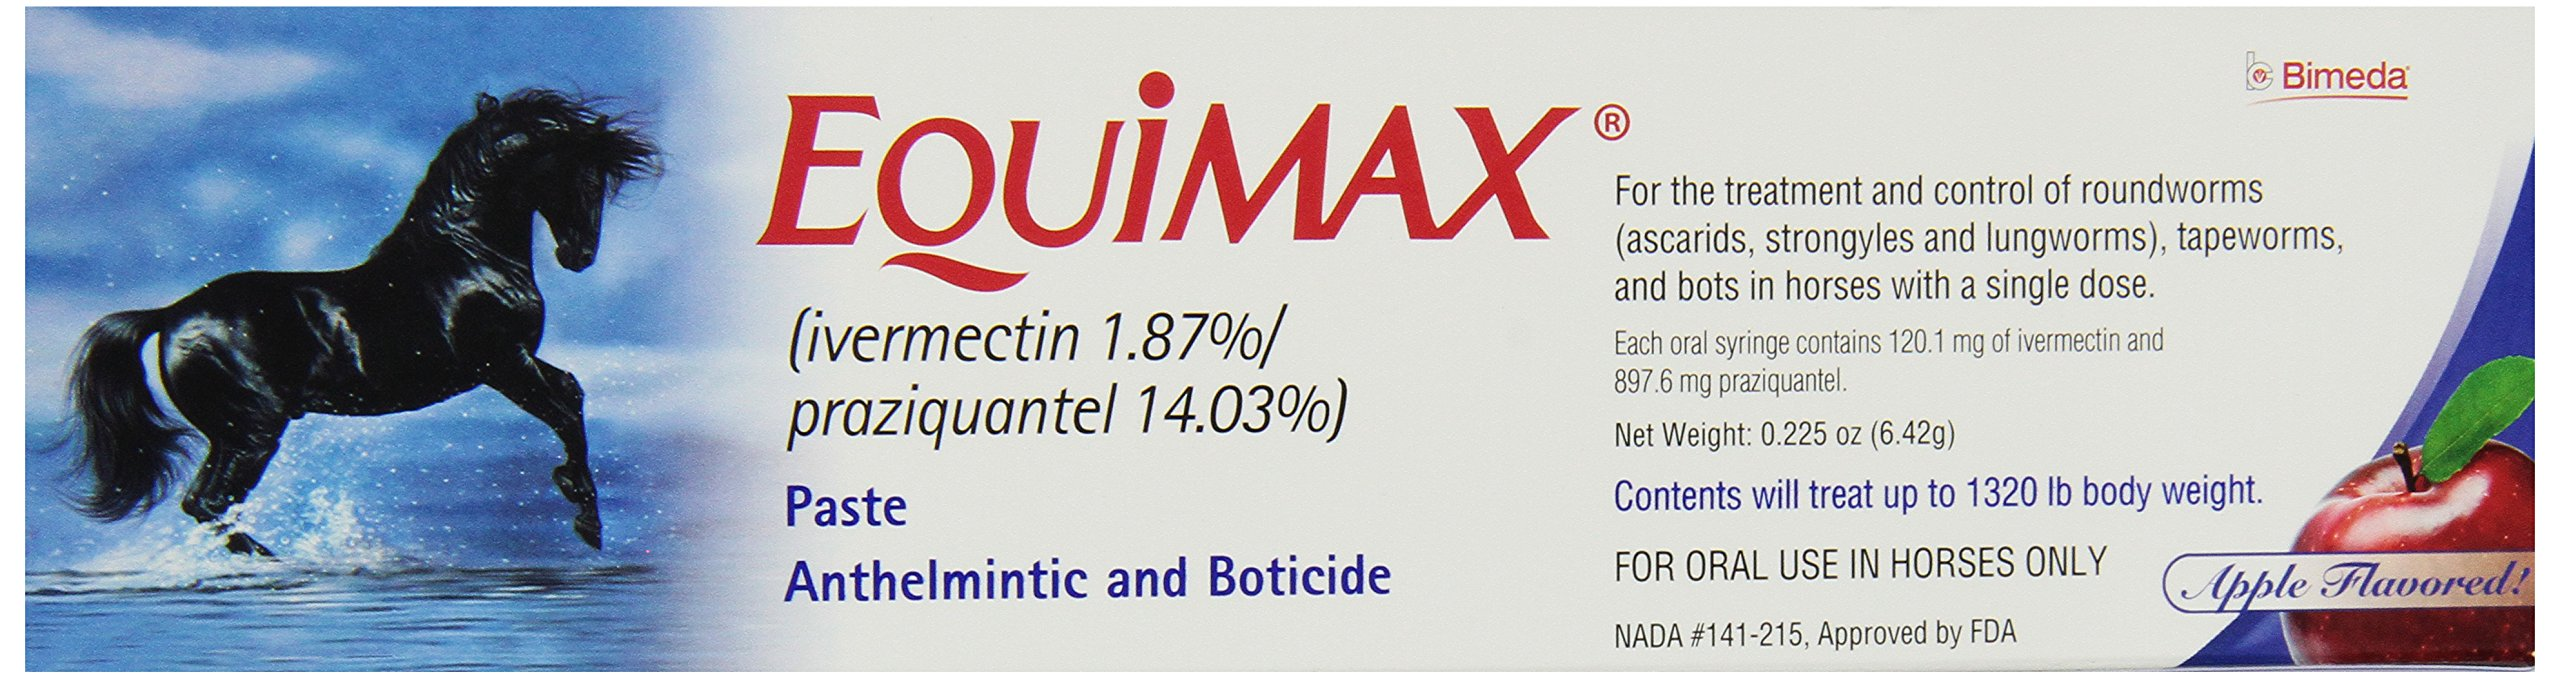 Equimax Dewormer Paste for Horses, 12 Doses by Bimeda (Image #1)